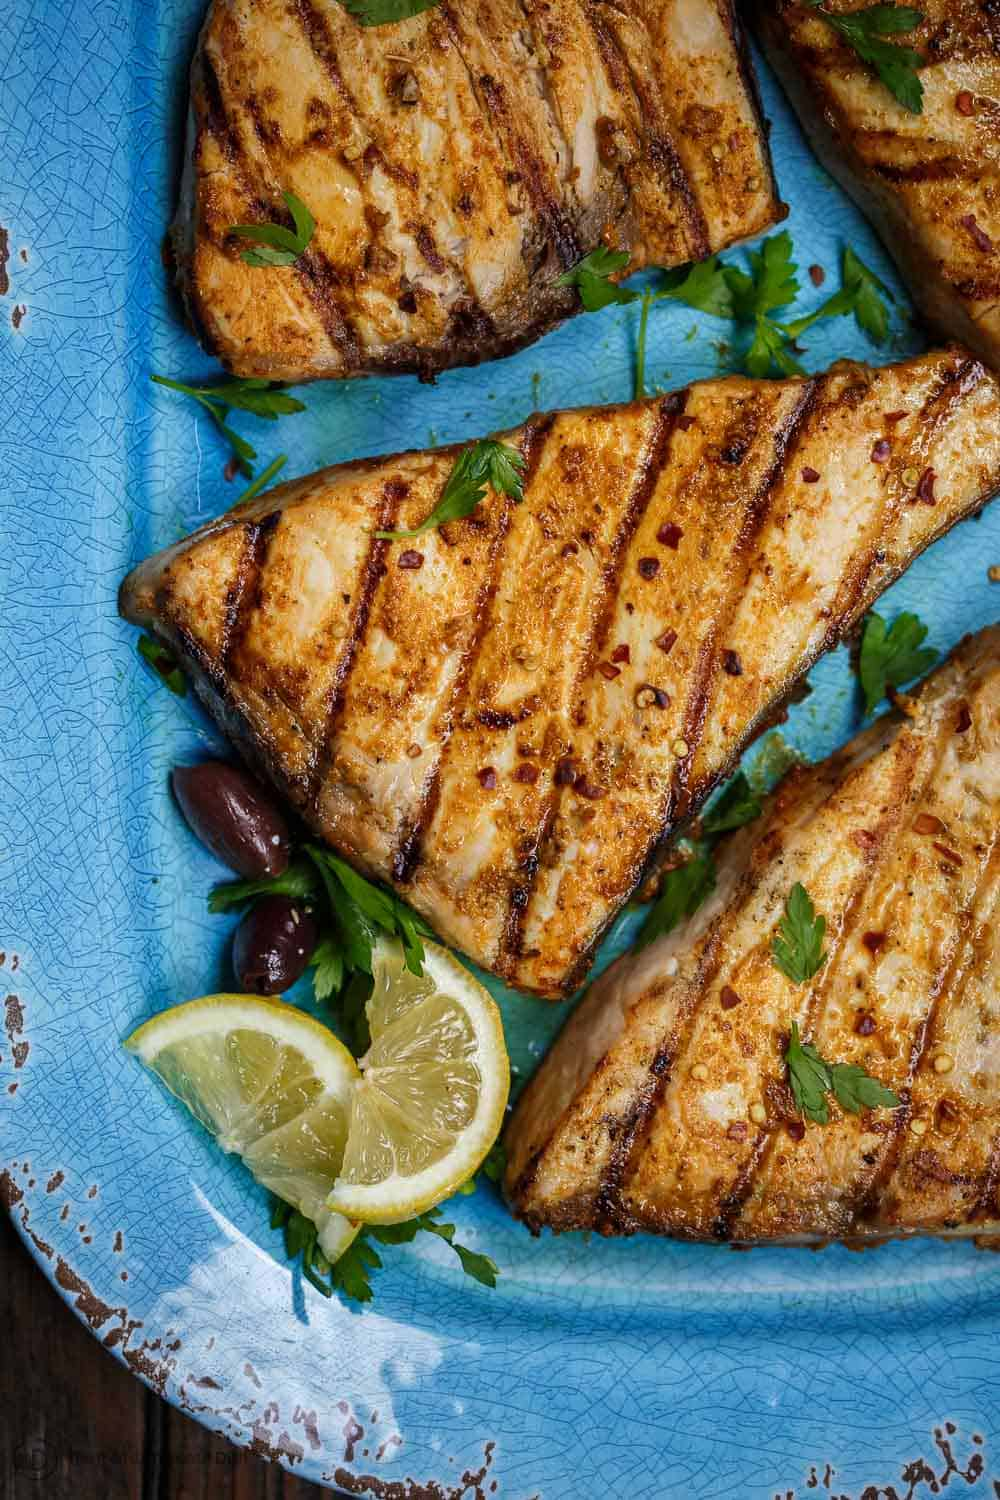 Grilled Swordfish served with lemon wedge